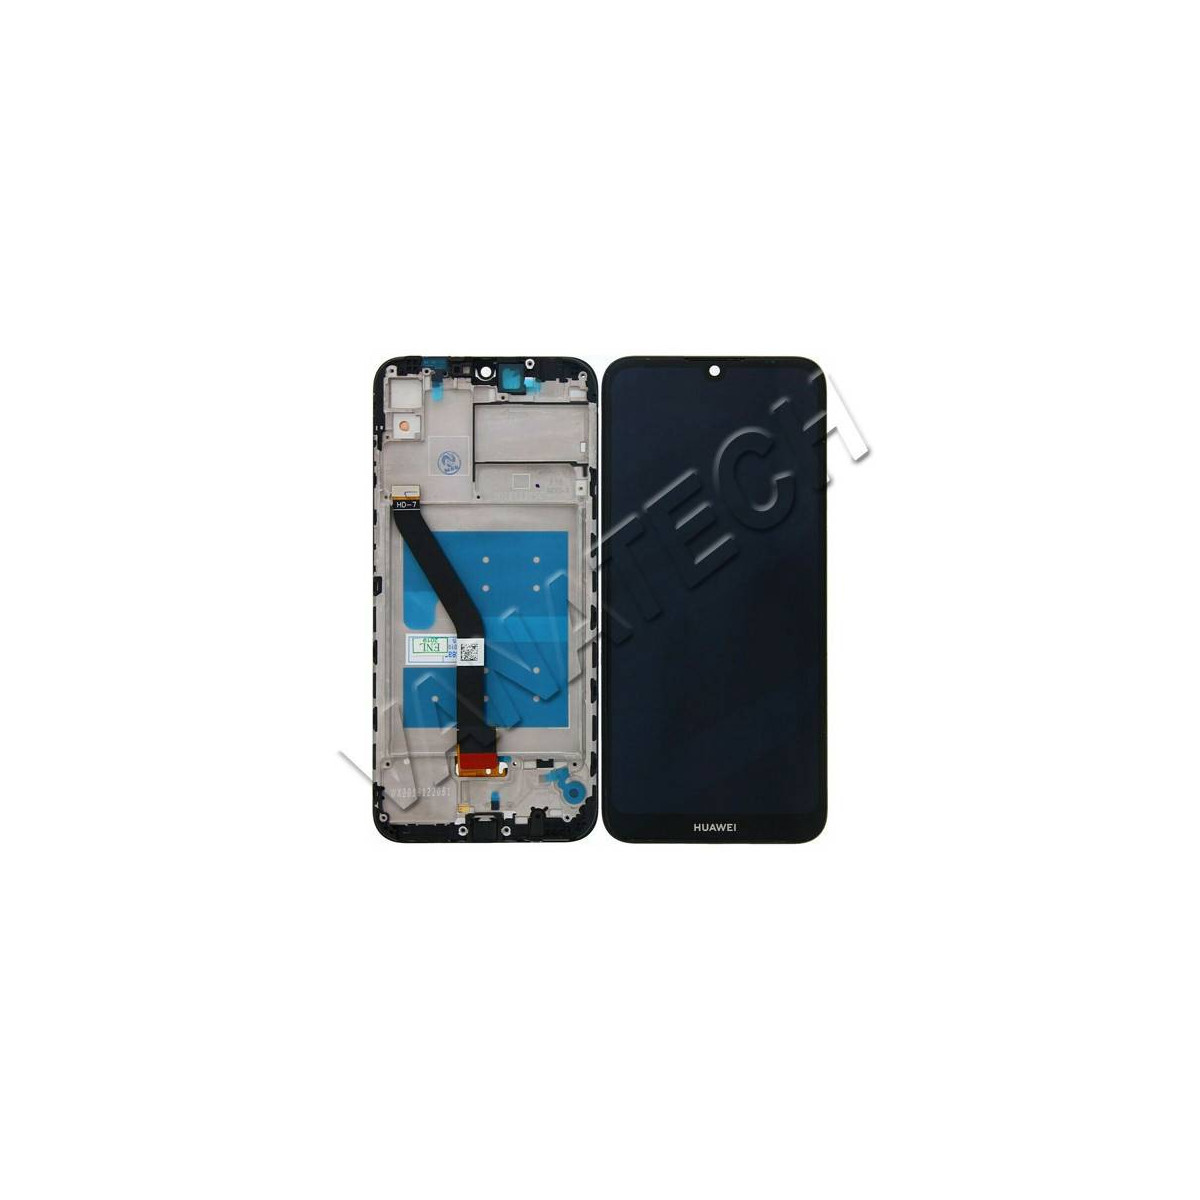 DISPLAY LCD + TOUCH SCREEN ORIGINALE SAMSUNG GALAXY J5 2017 SM-J530F SILVER GH97-20738B